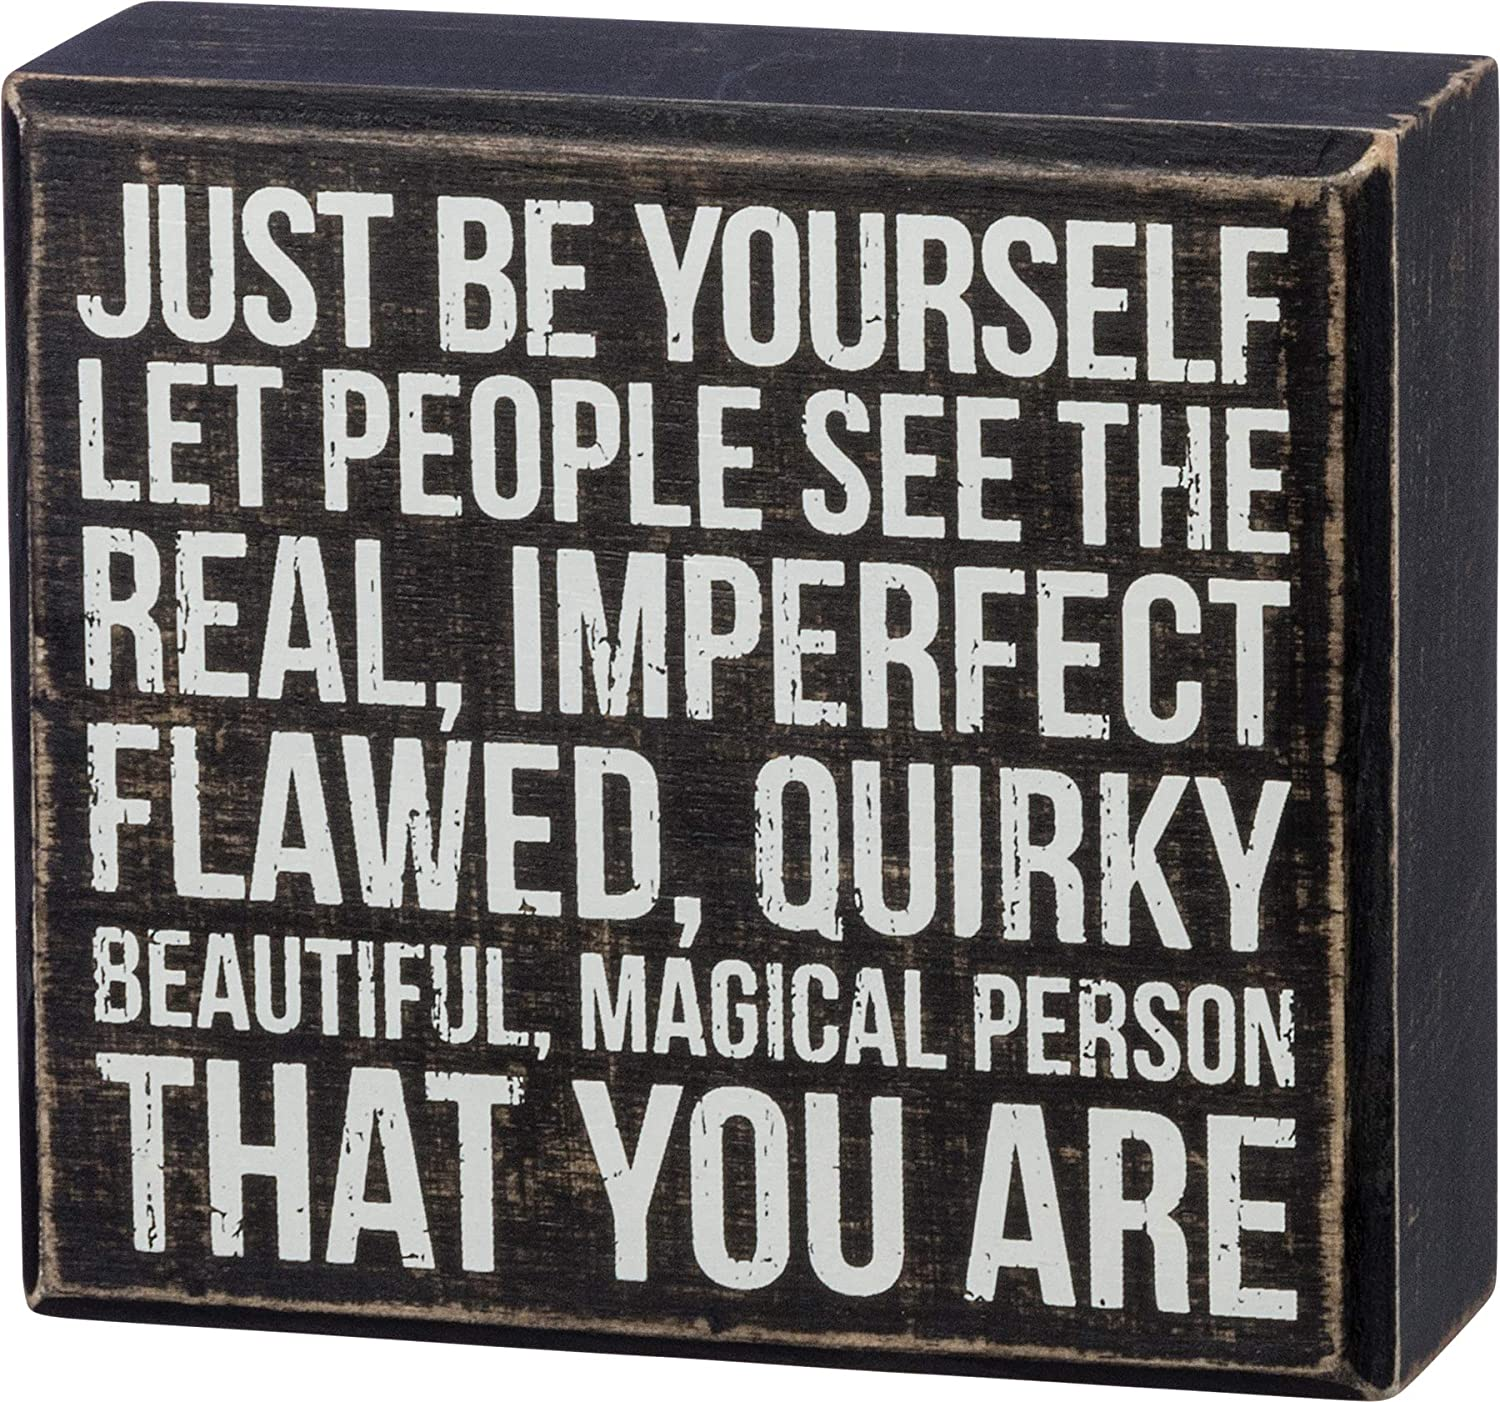 "Primitives by Kathy Box Sign — Just be Yourself Let People see the Real, Imperfect Flawed, Quirky Beautiful, Magical Person that You Are — 5"" x 4.5"""